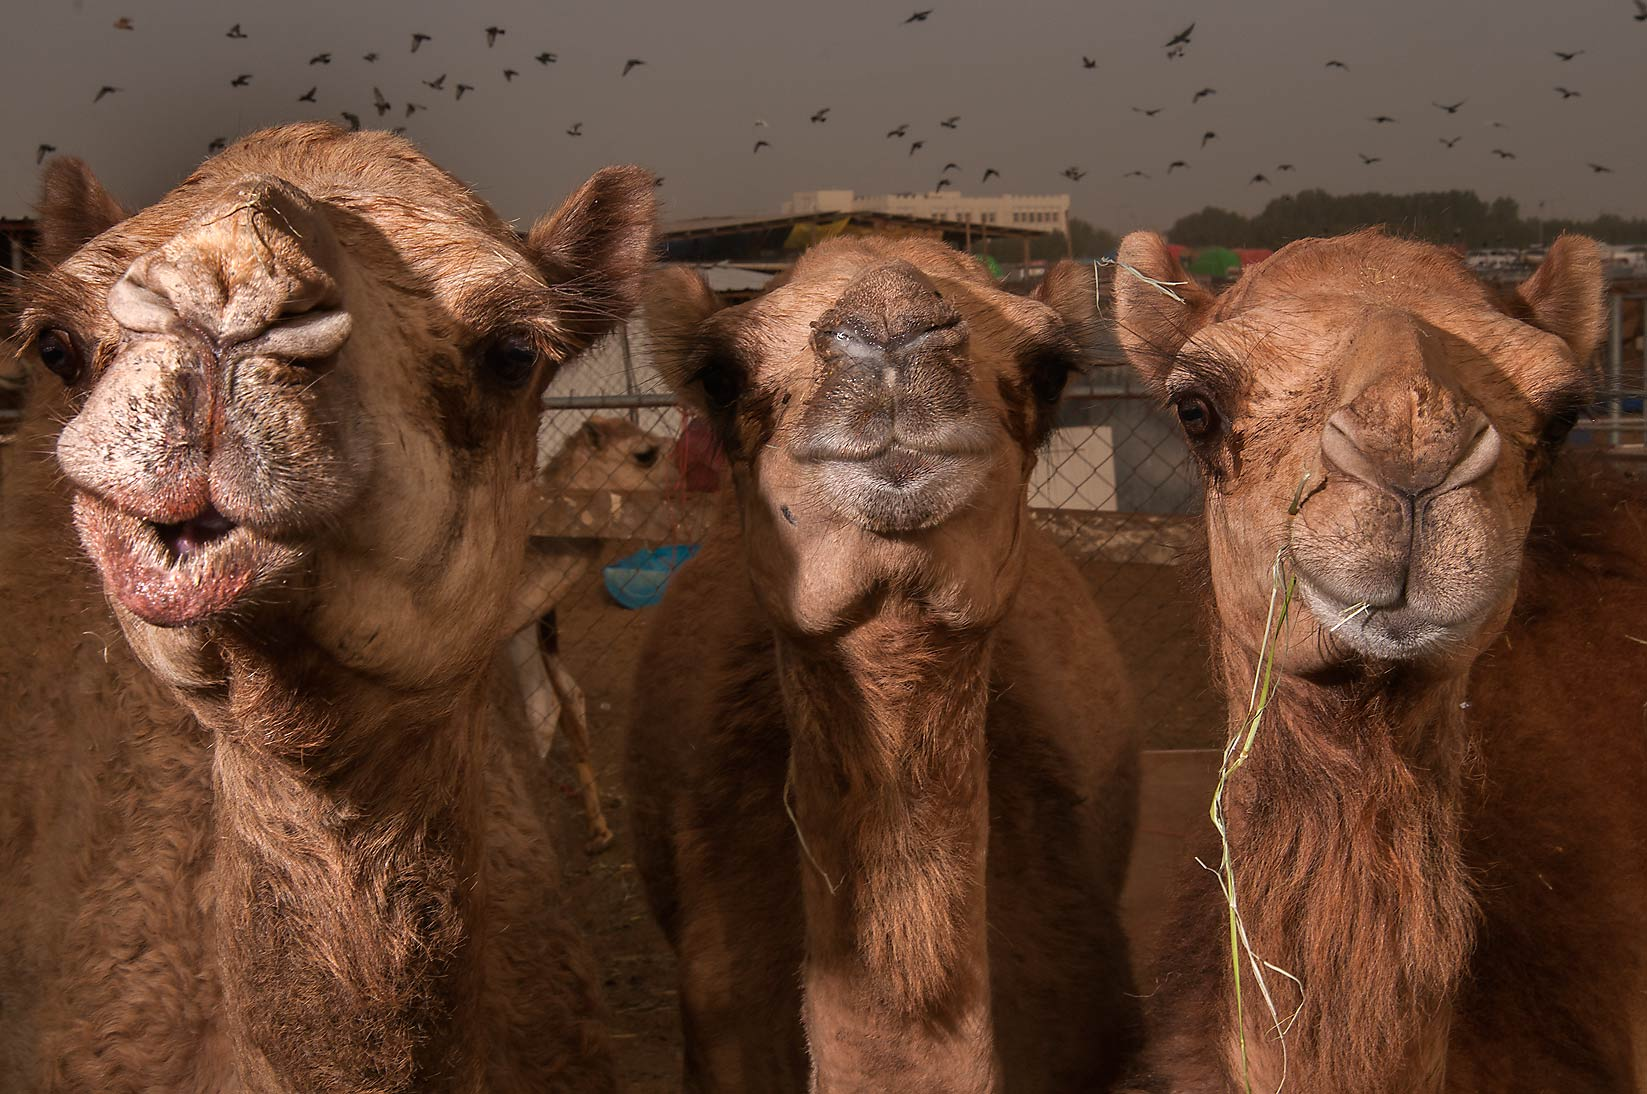 Three camels in livestock markets in Abu Hamour. Doha, Qatar